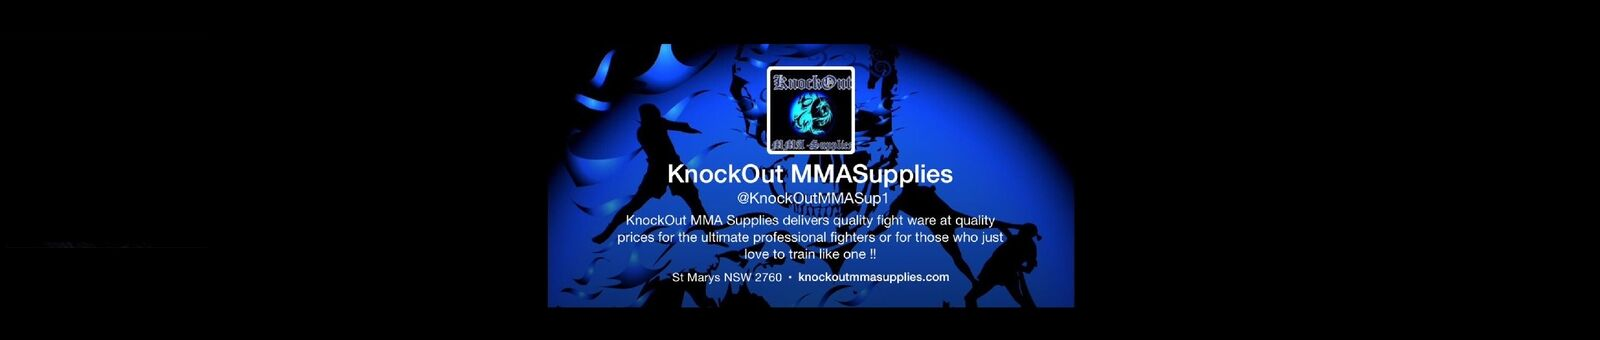 KnockOut MMA Supplies